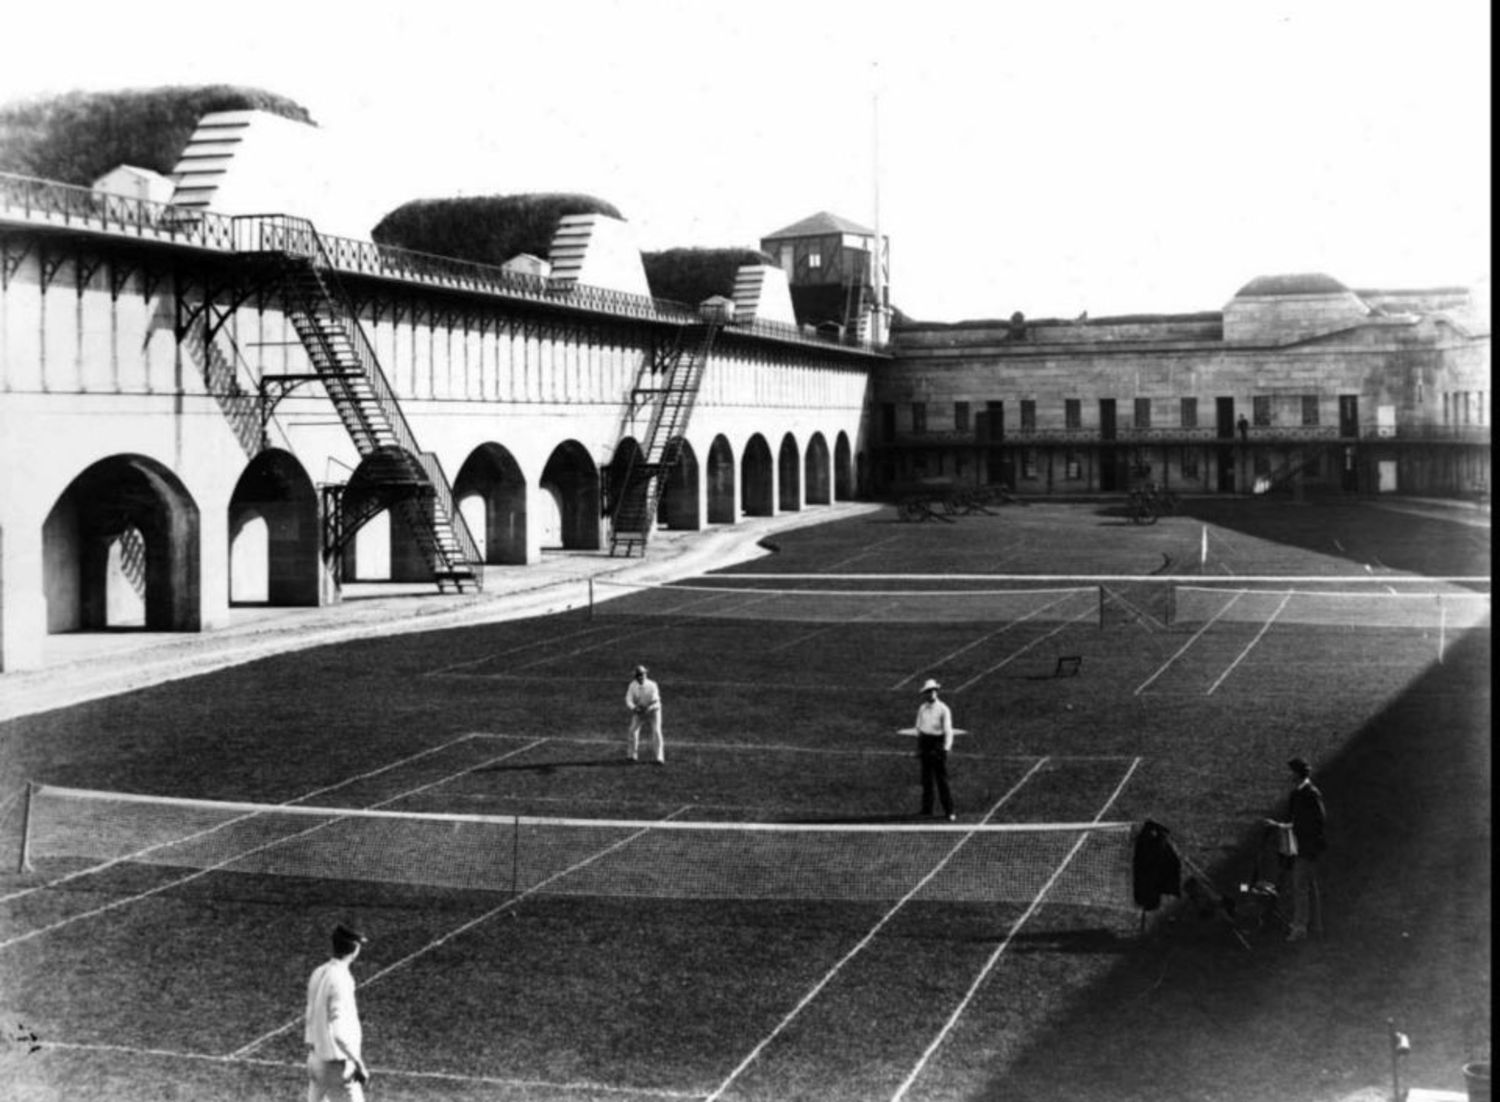 People playing a tennis match at Fort Wadsworth.